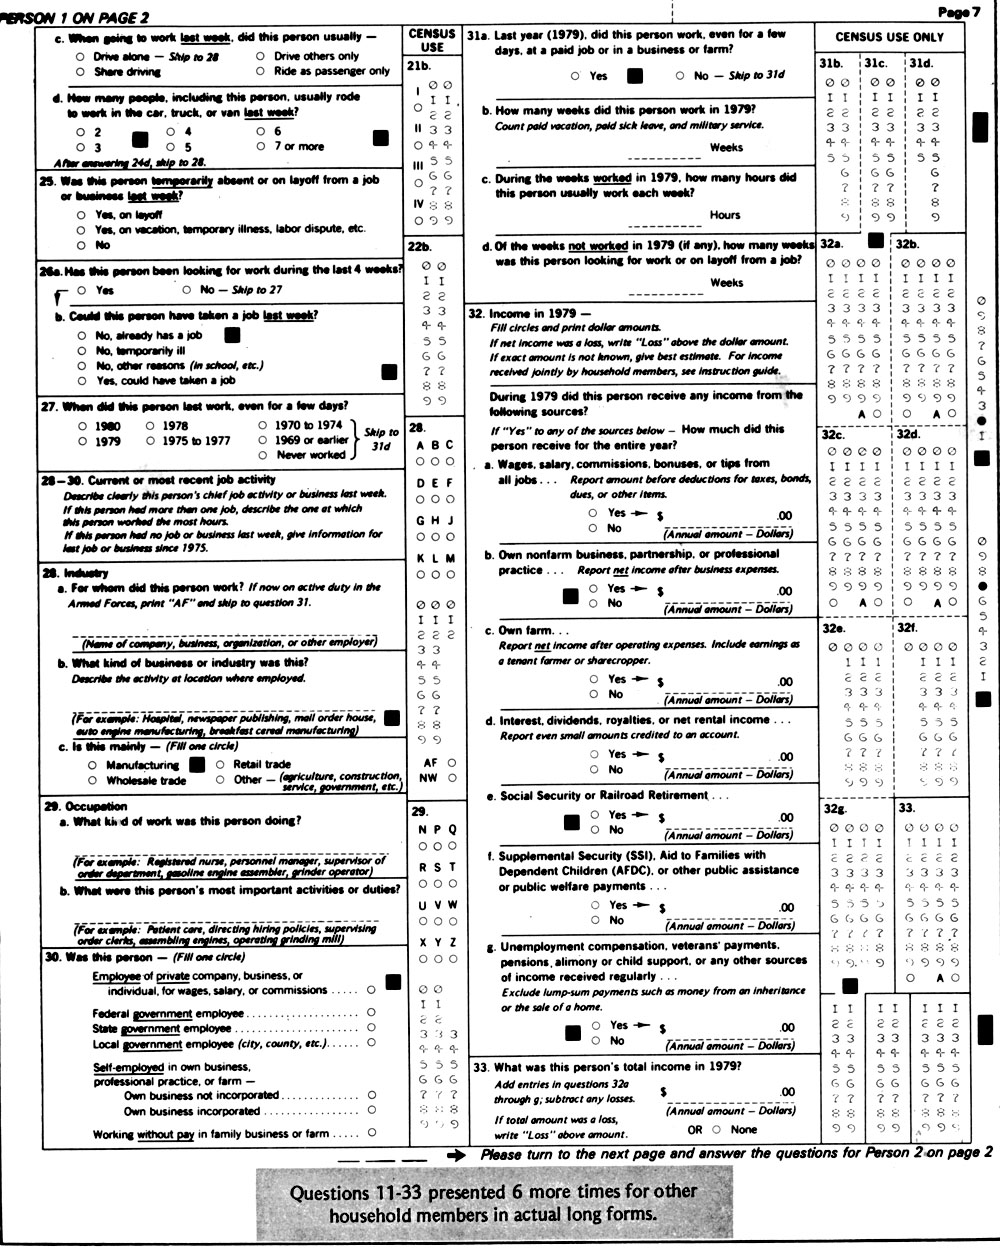 Scanned image of EnumerationForm